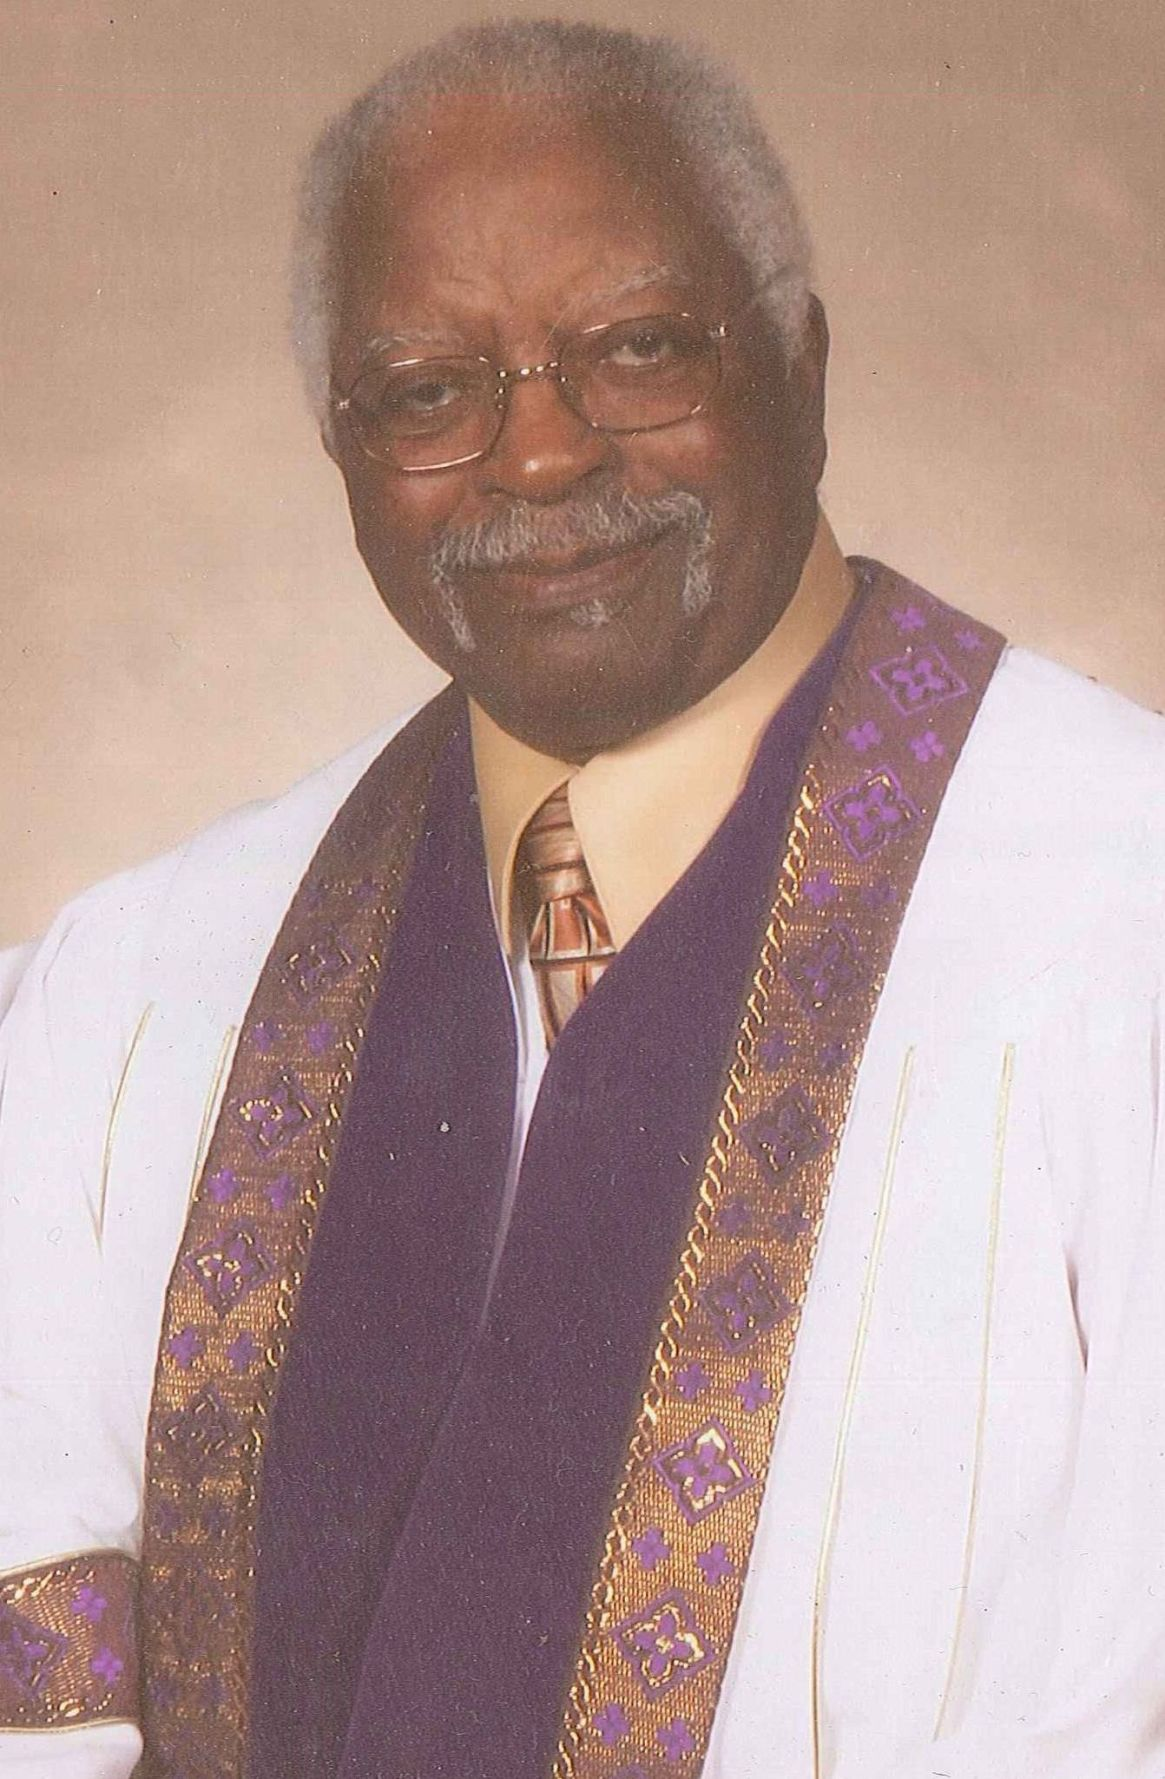 McClurkin, Bishop William L.